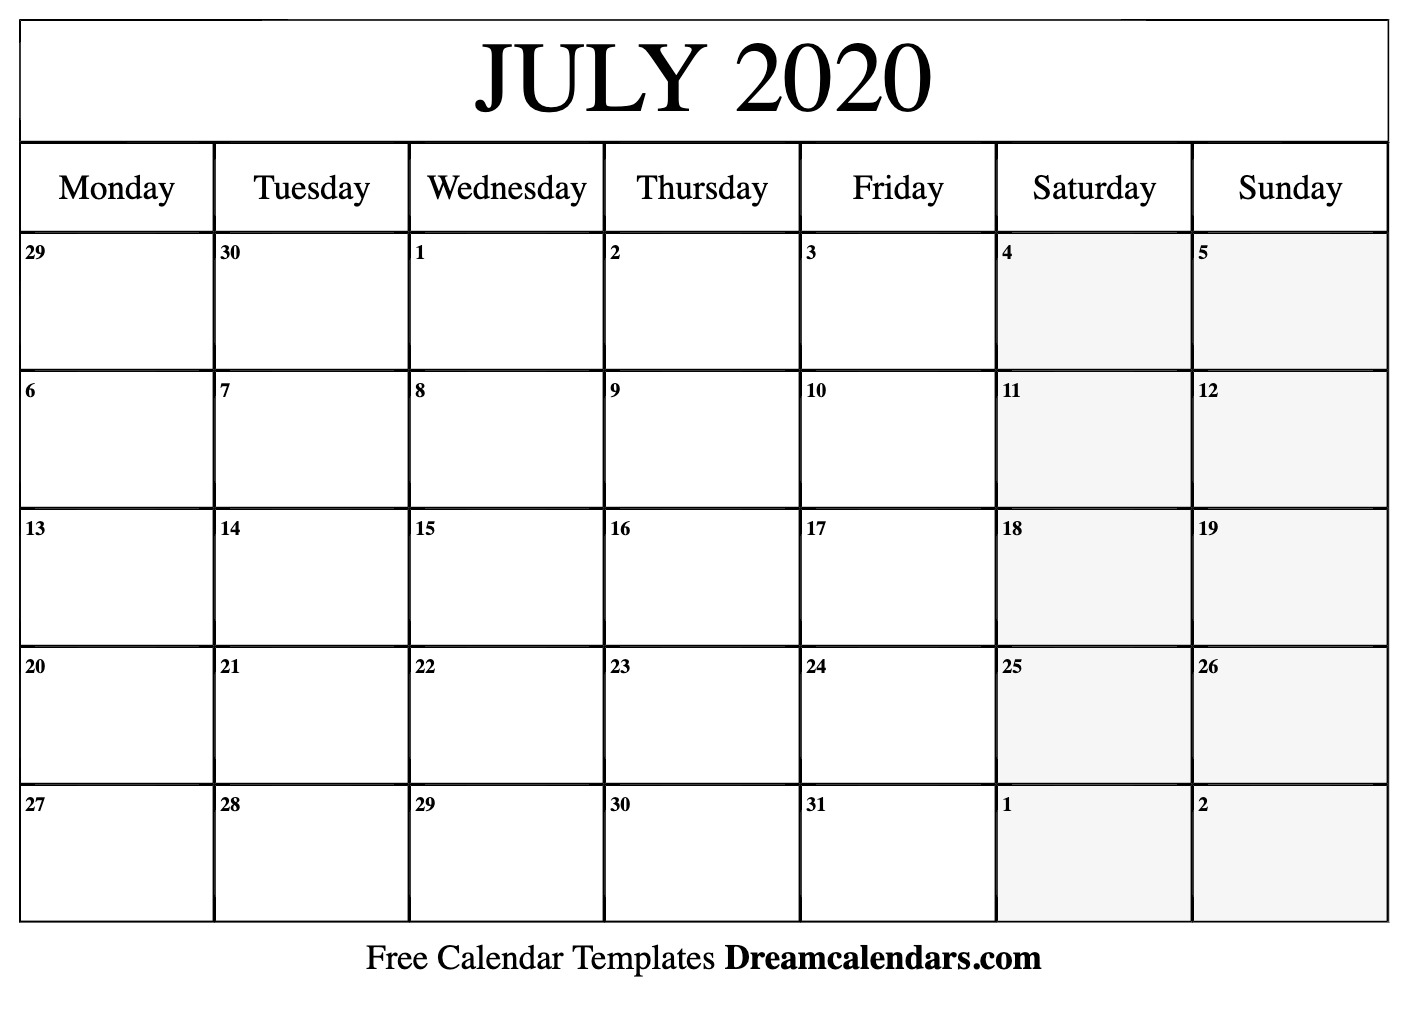 Calendar Of July 2020 Printable July 2020 Calendar